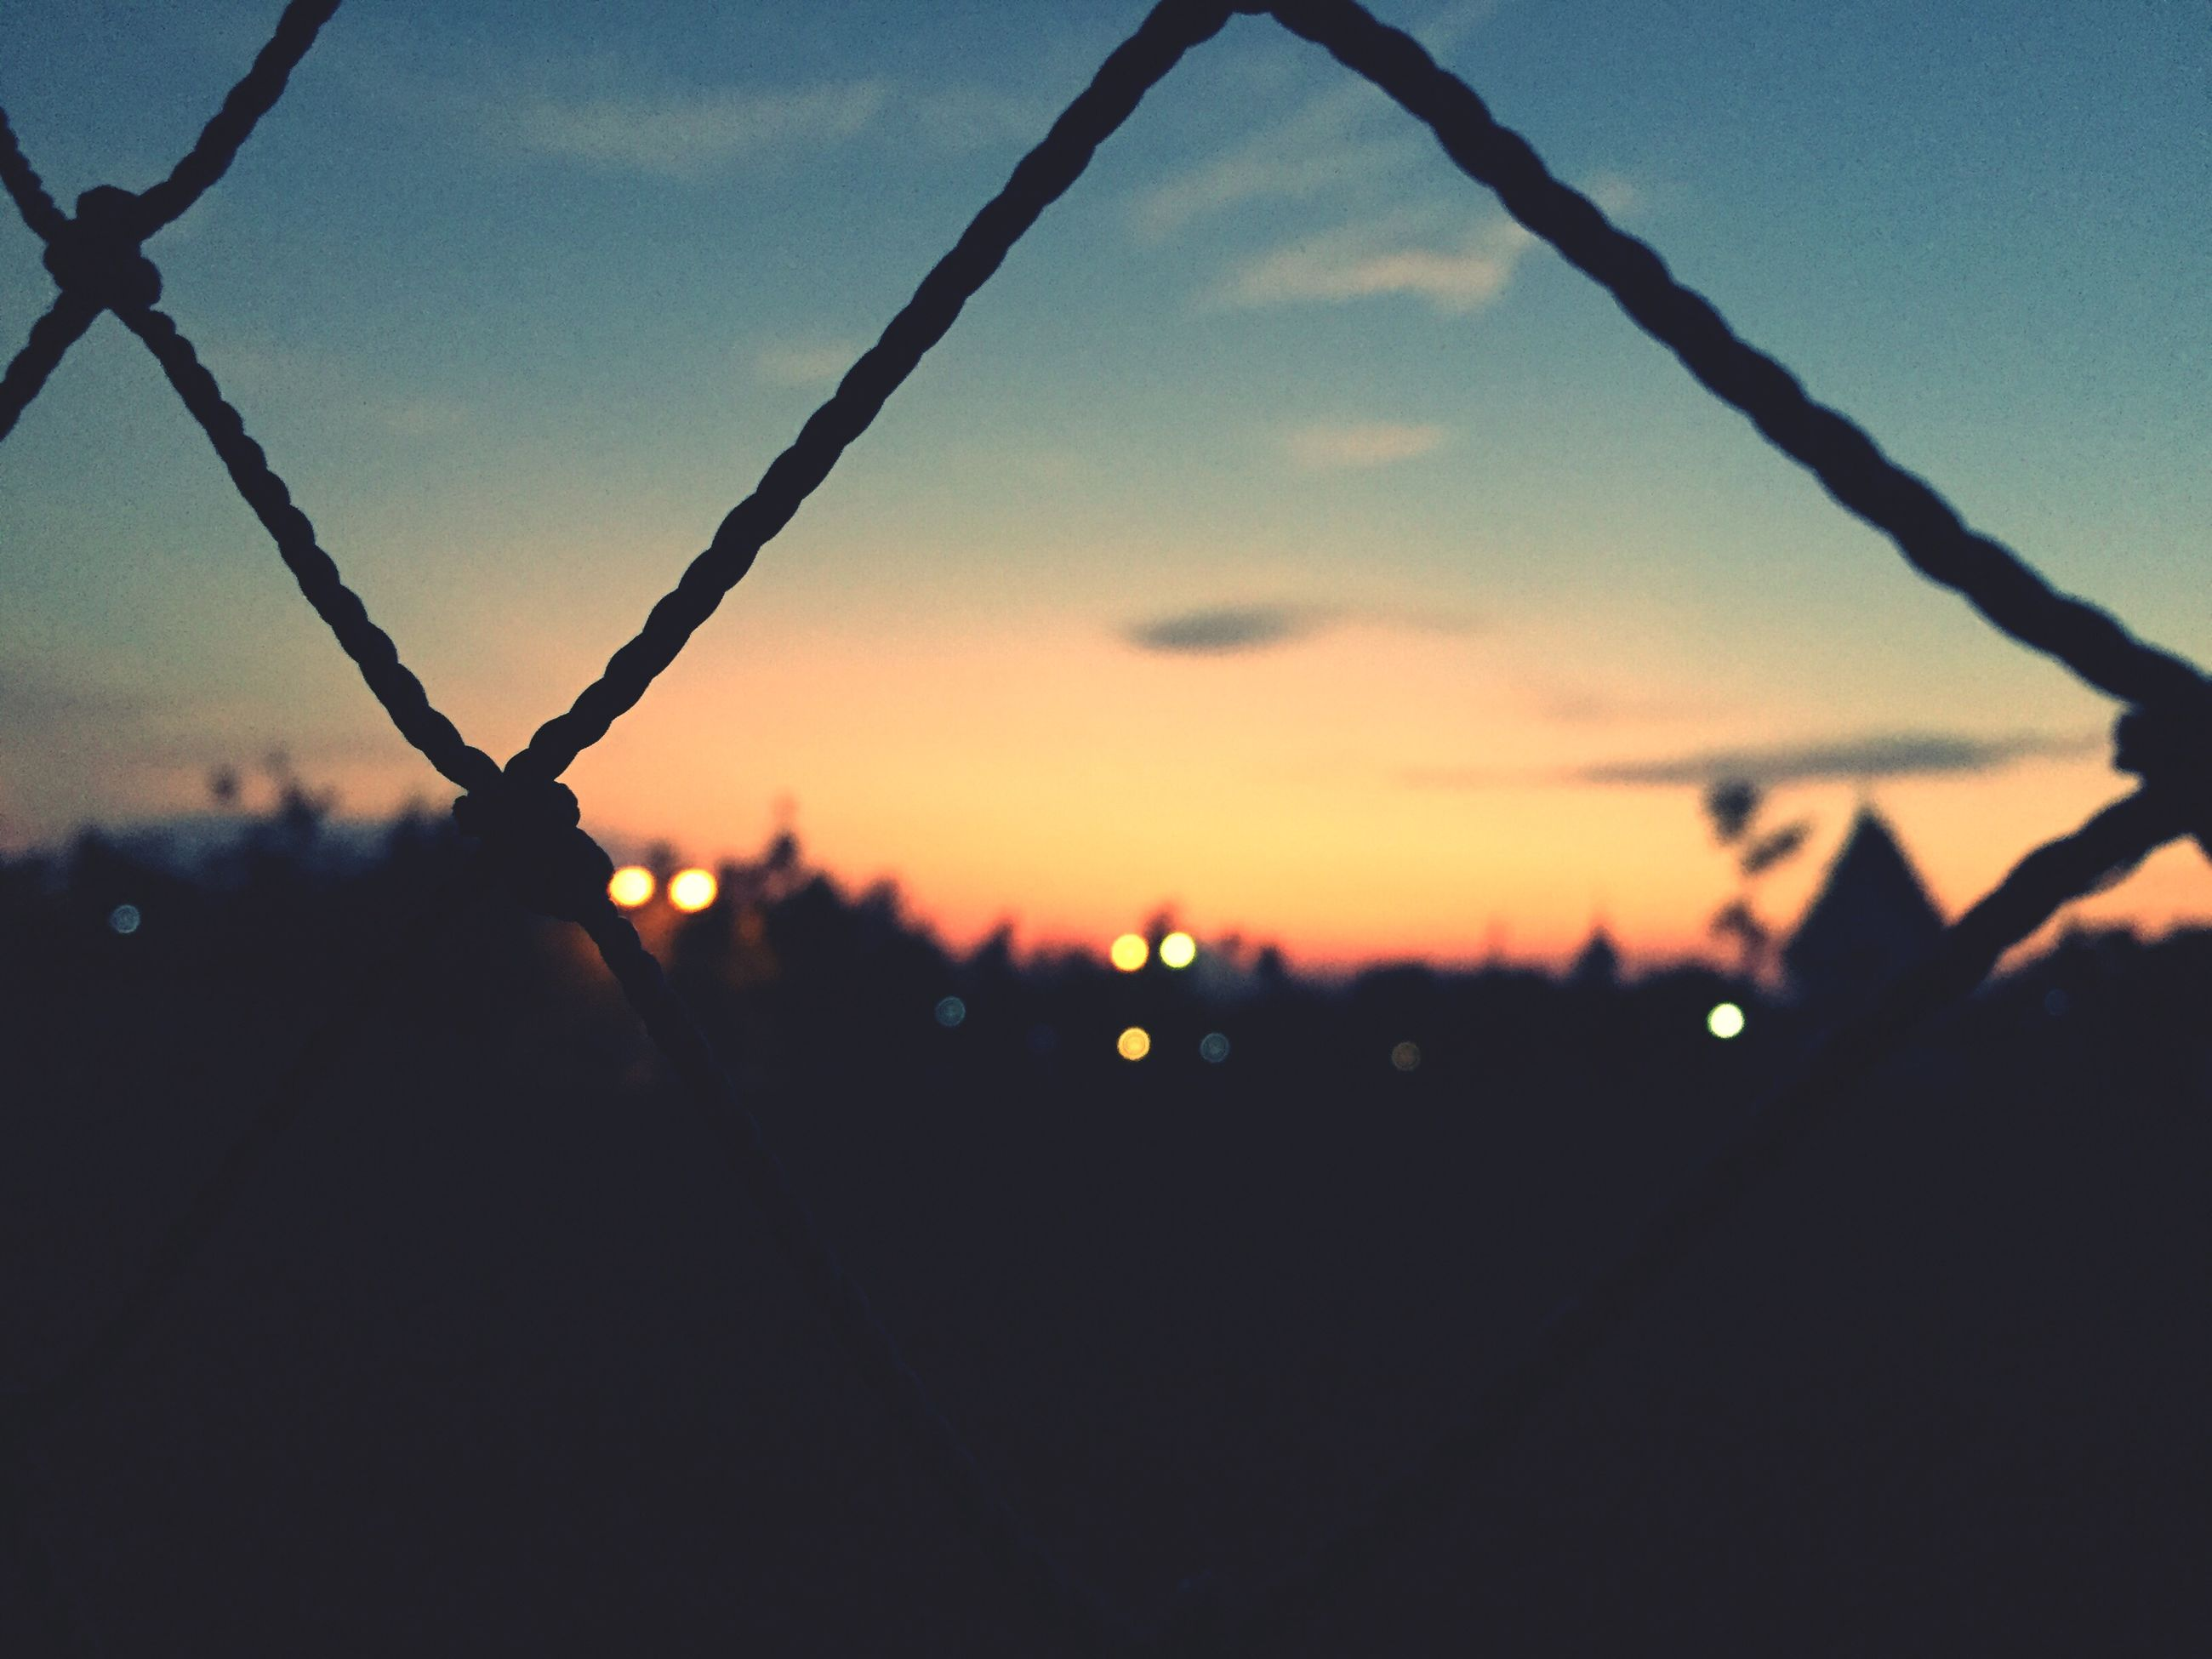 sunset, sky, silhouette, focus on foreground, close-up, fence, nature, orange color, dusk, beauty in nature, sun, protection, no people, safety, metal, tranquility, outdoors, sunlight, chainlink fence, scenics